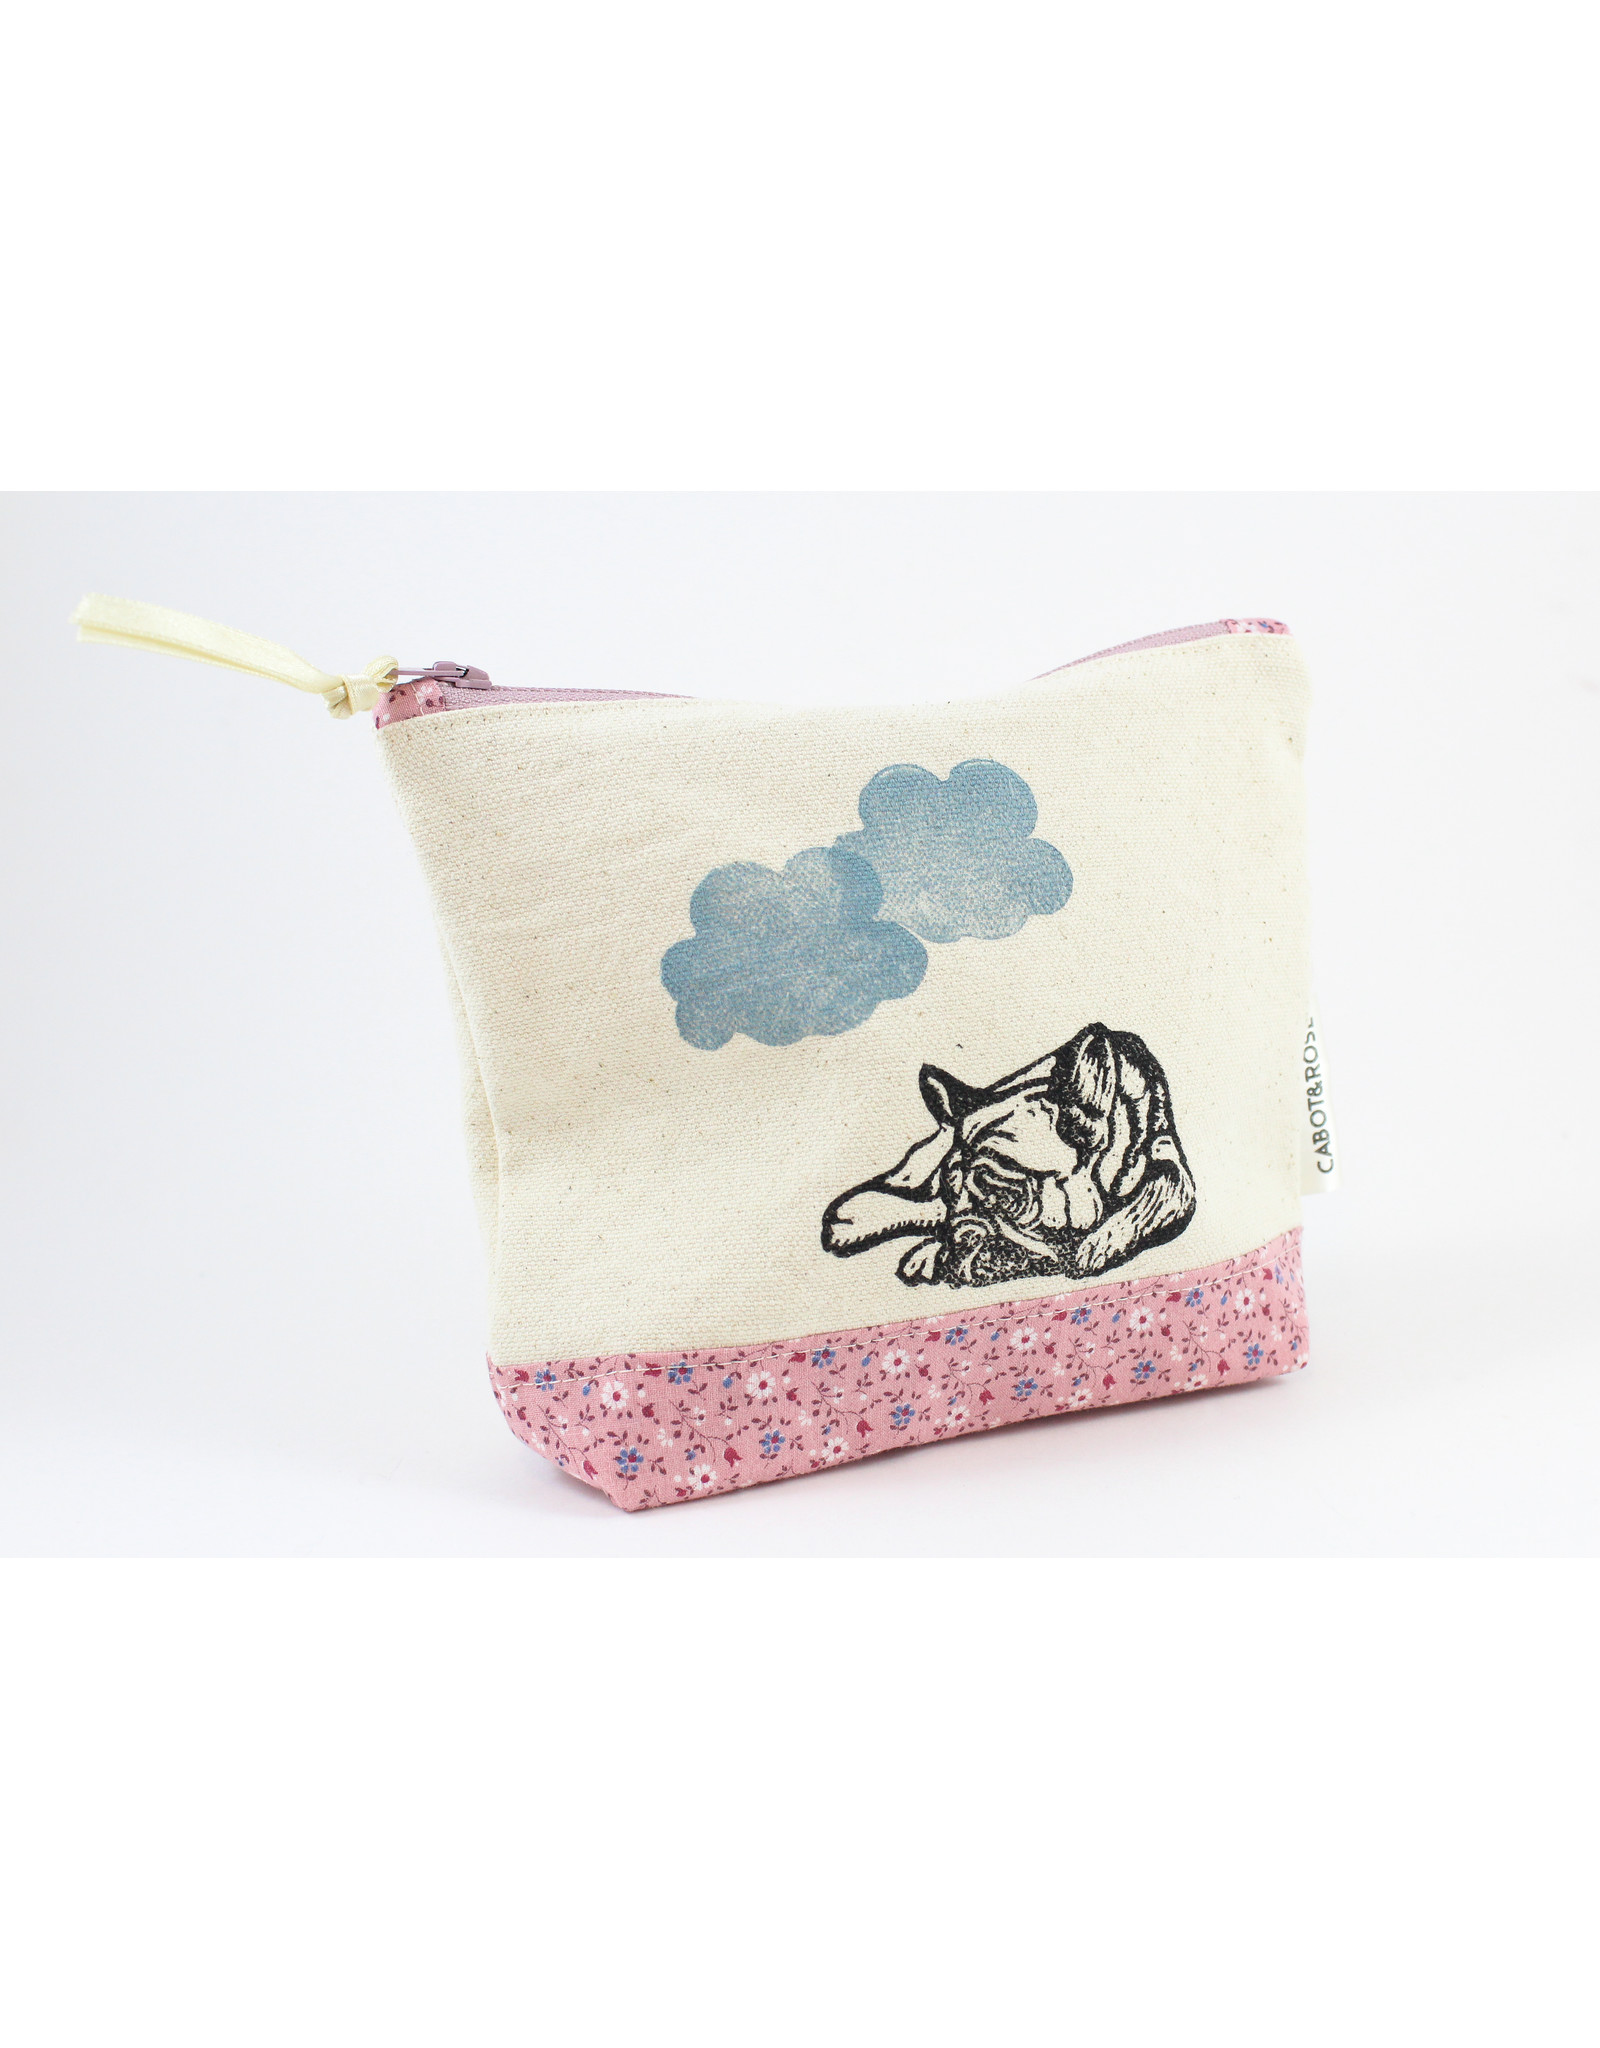 Cabot & Rose Block Printed Zip Bags by Cabot & Rose